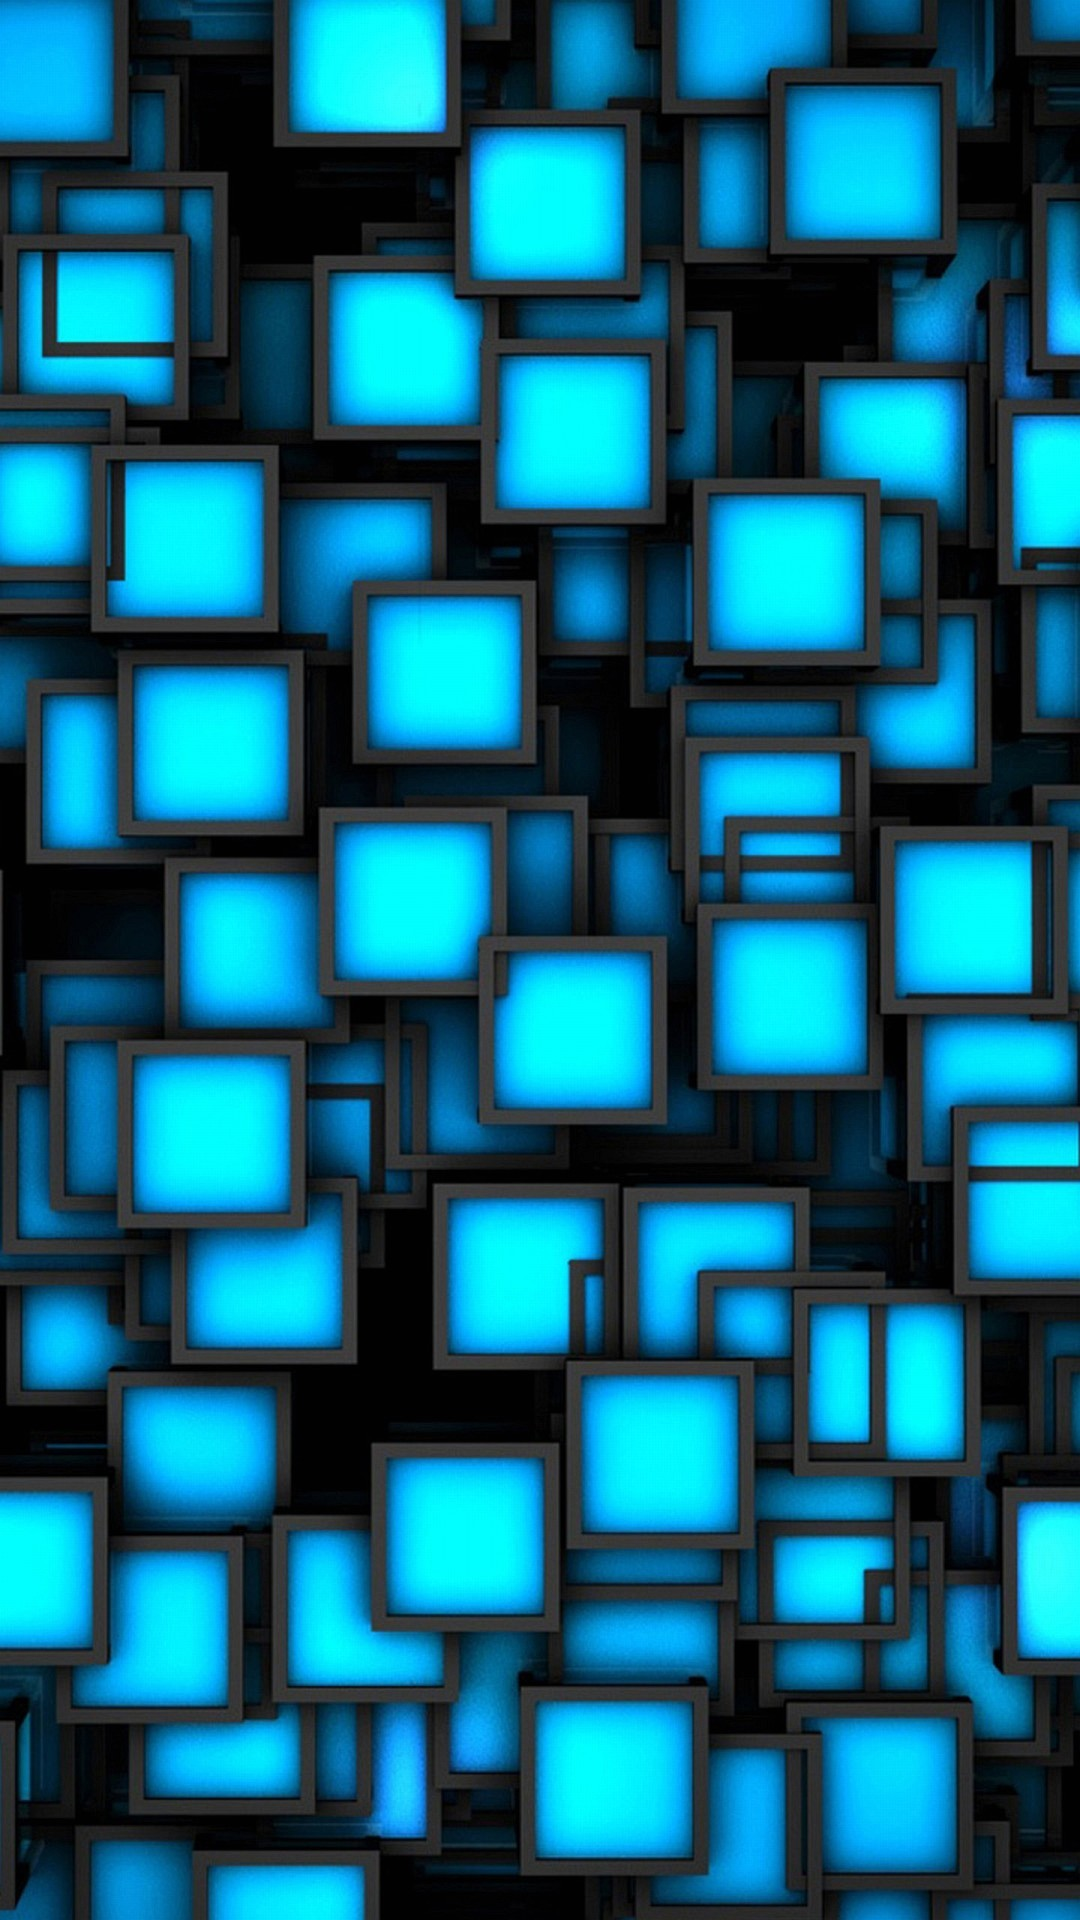 Wallpaper Iphone 6 Plus Square Blue Black 5 5 Inches – 1080 x 1920 – Iphone  6 Plus Inches 5 5 Awesome – photo image free beautiful